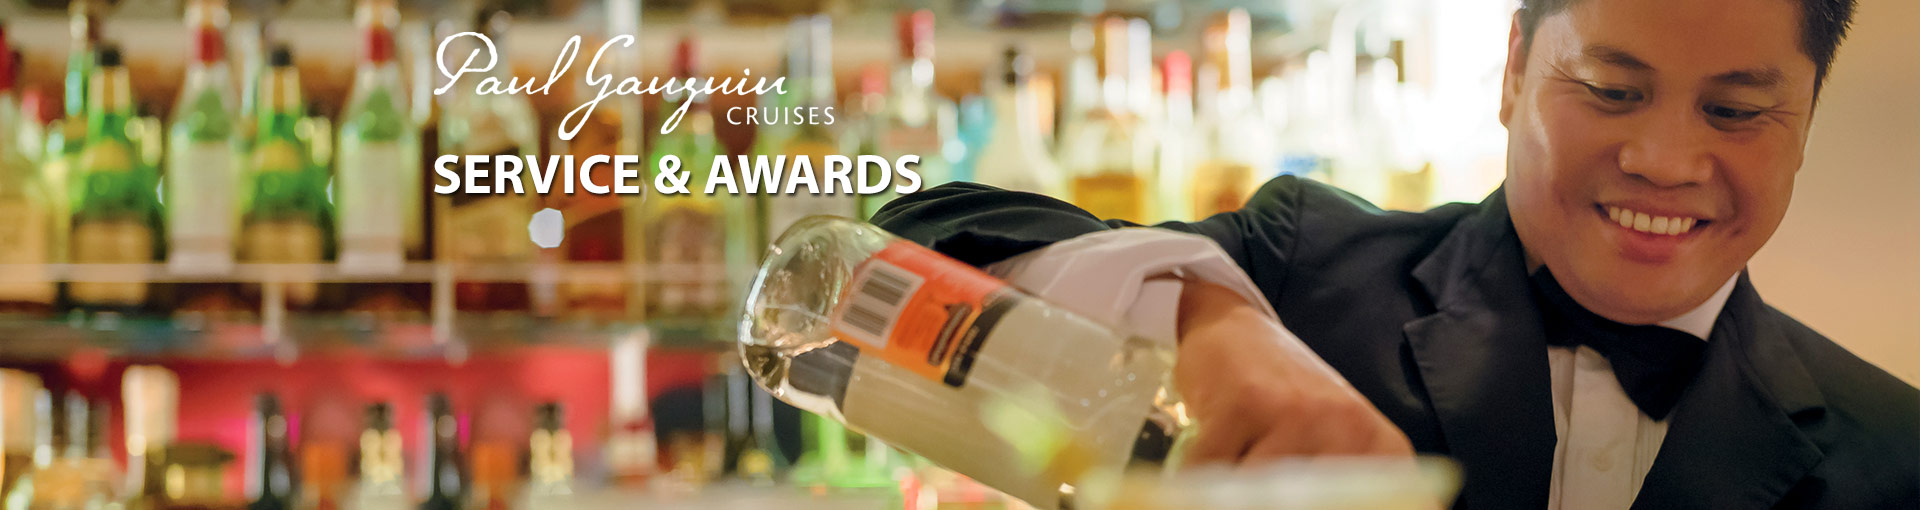 Paul Gauguin Cruises Service & Awards